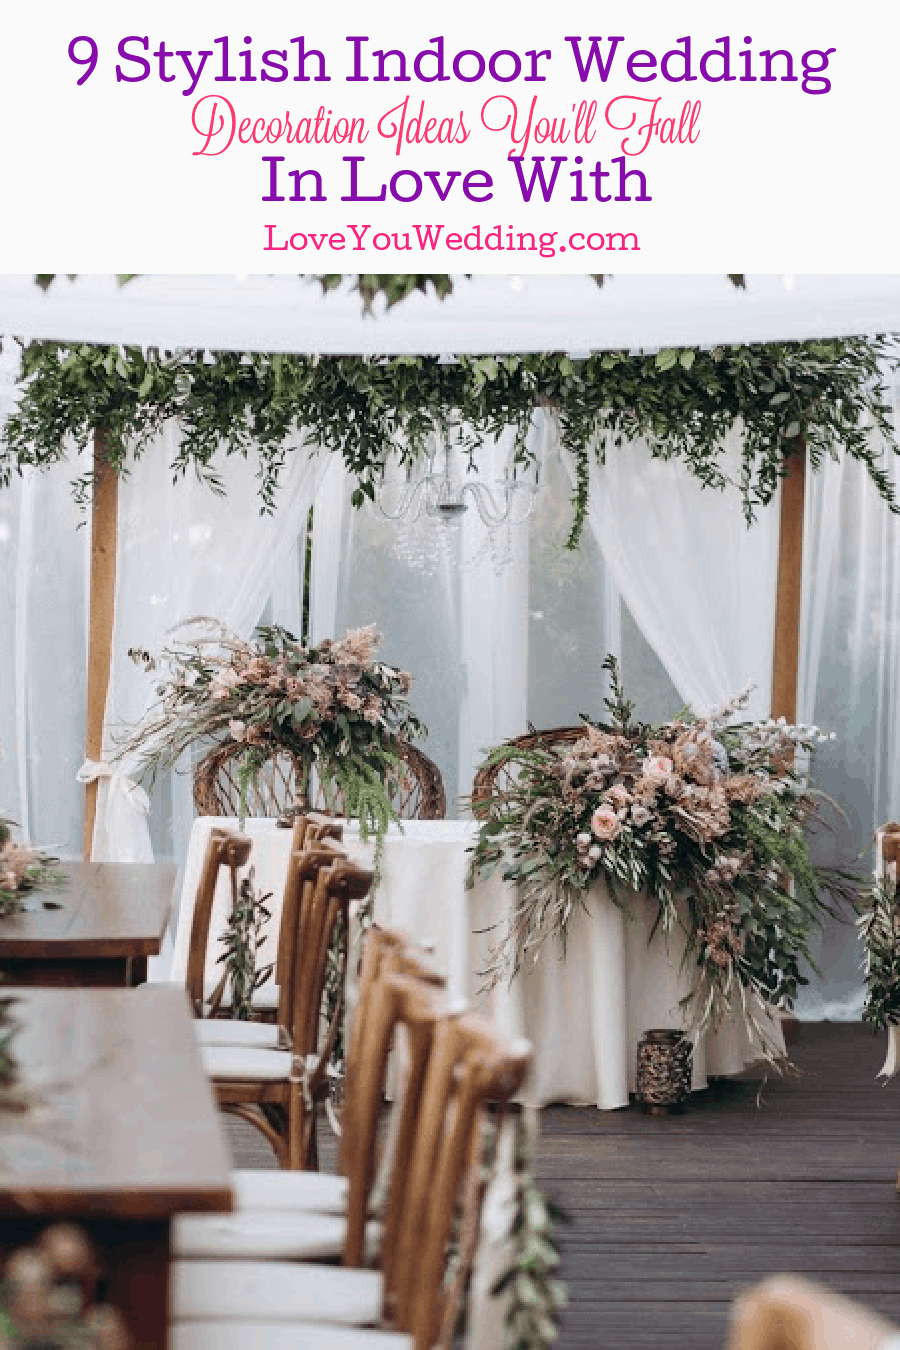 9 most creative, attractive and amazing indoor wedding decoration ideas that will certainly wow you. Get them and see the magic!